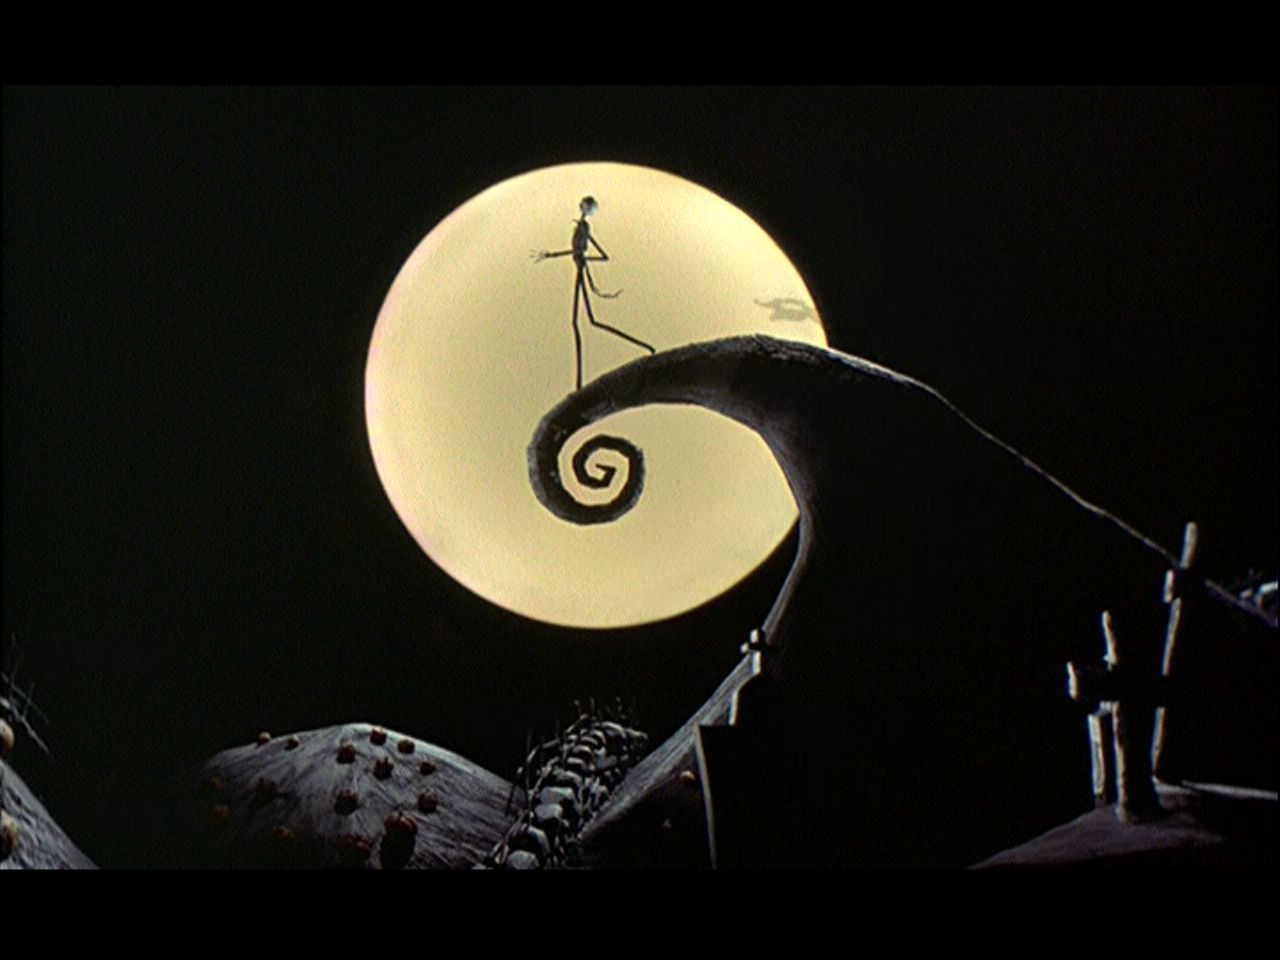 The nightmare before christmas nightmare before christmas image